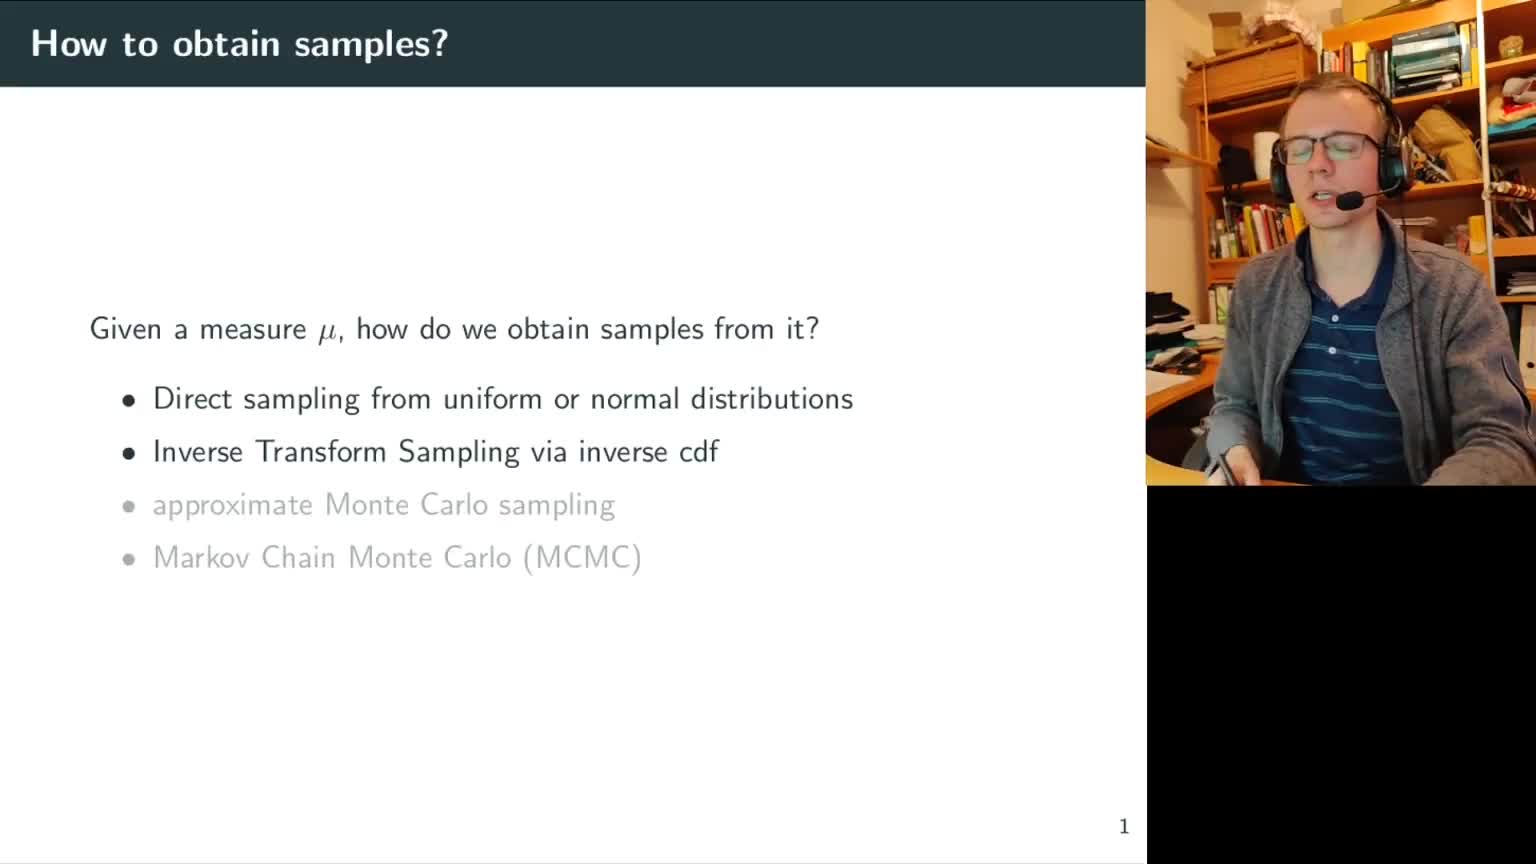 Obtaining samples directly preview image